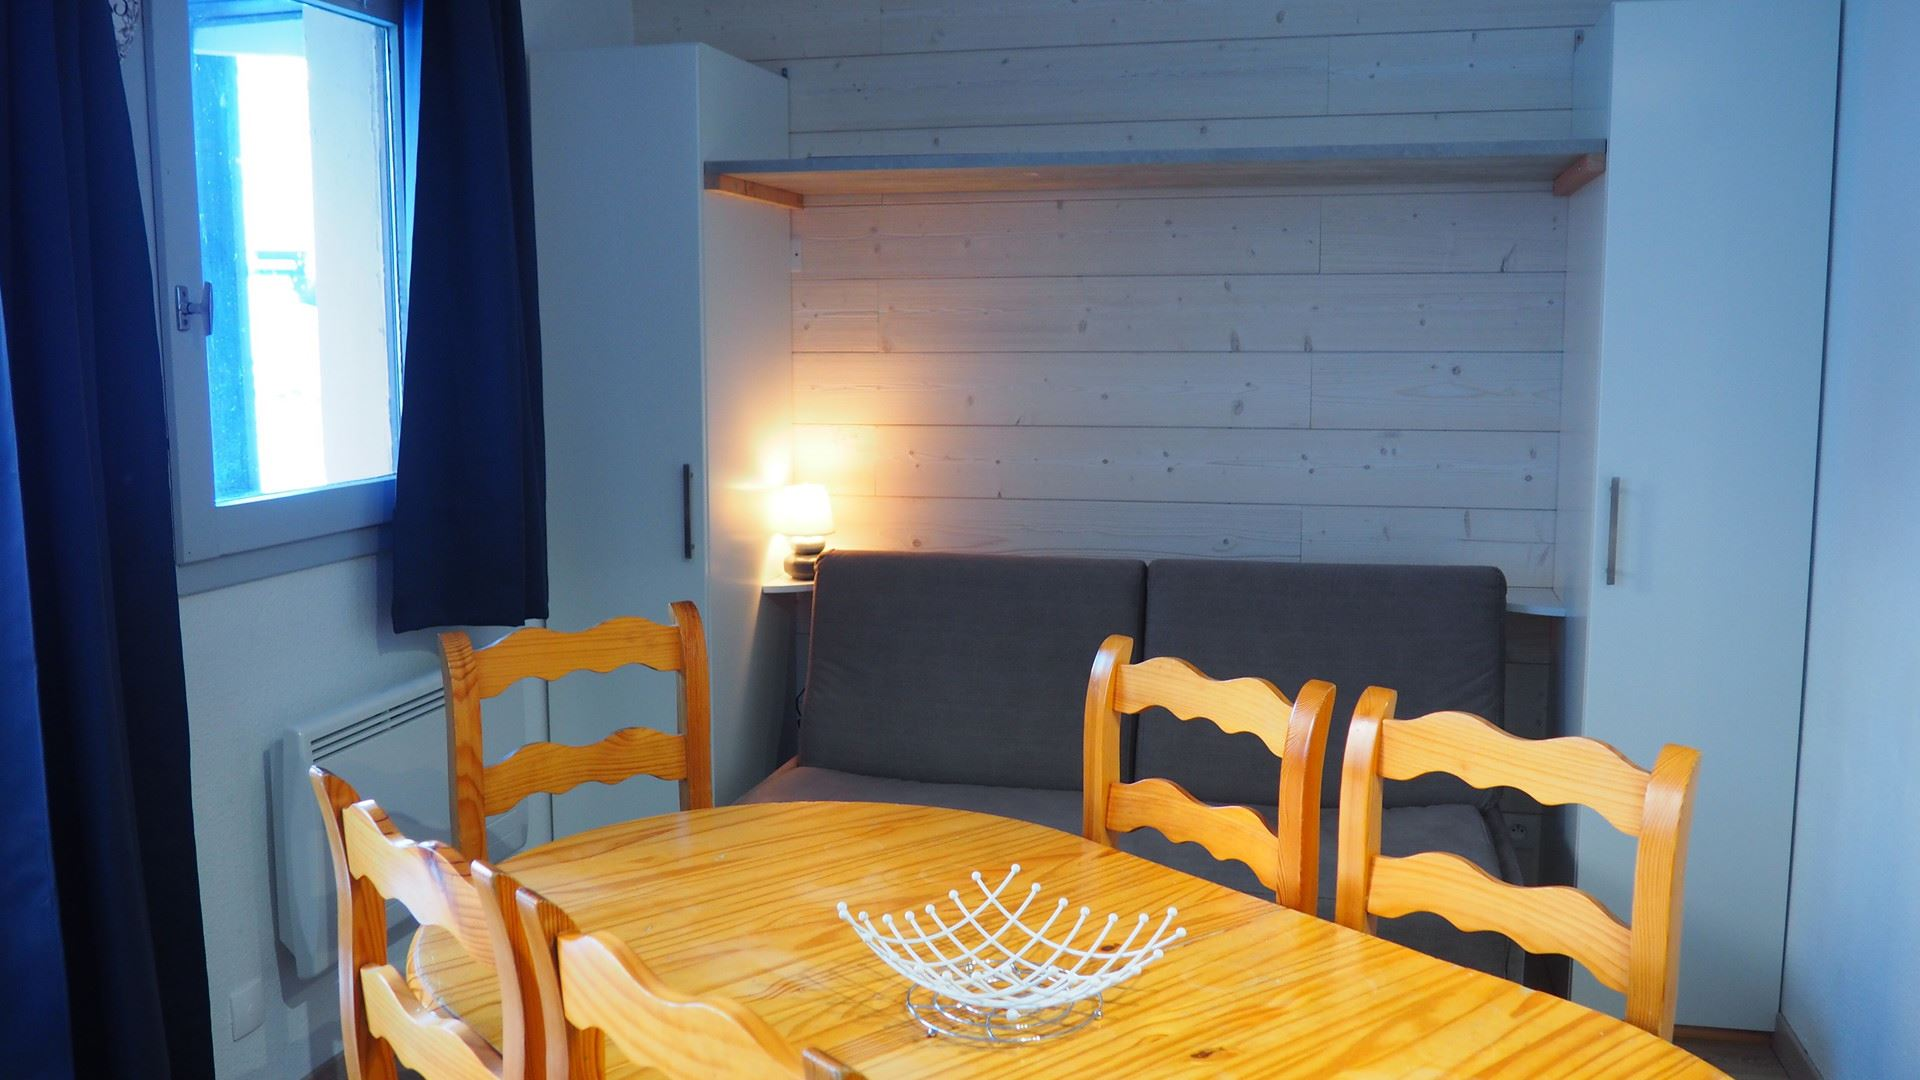 2 Rooms 5 Pers ski-in-ski-out / Villaret 617